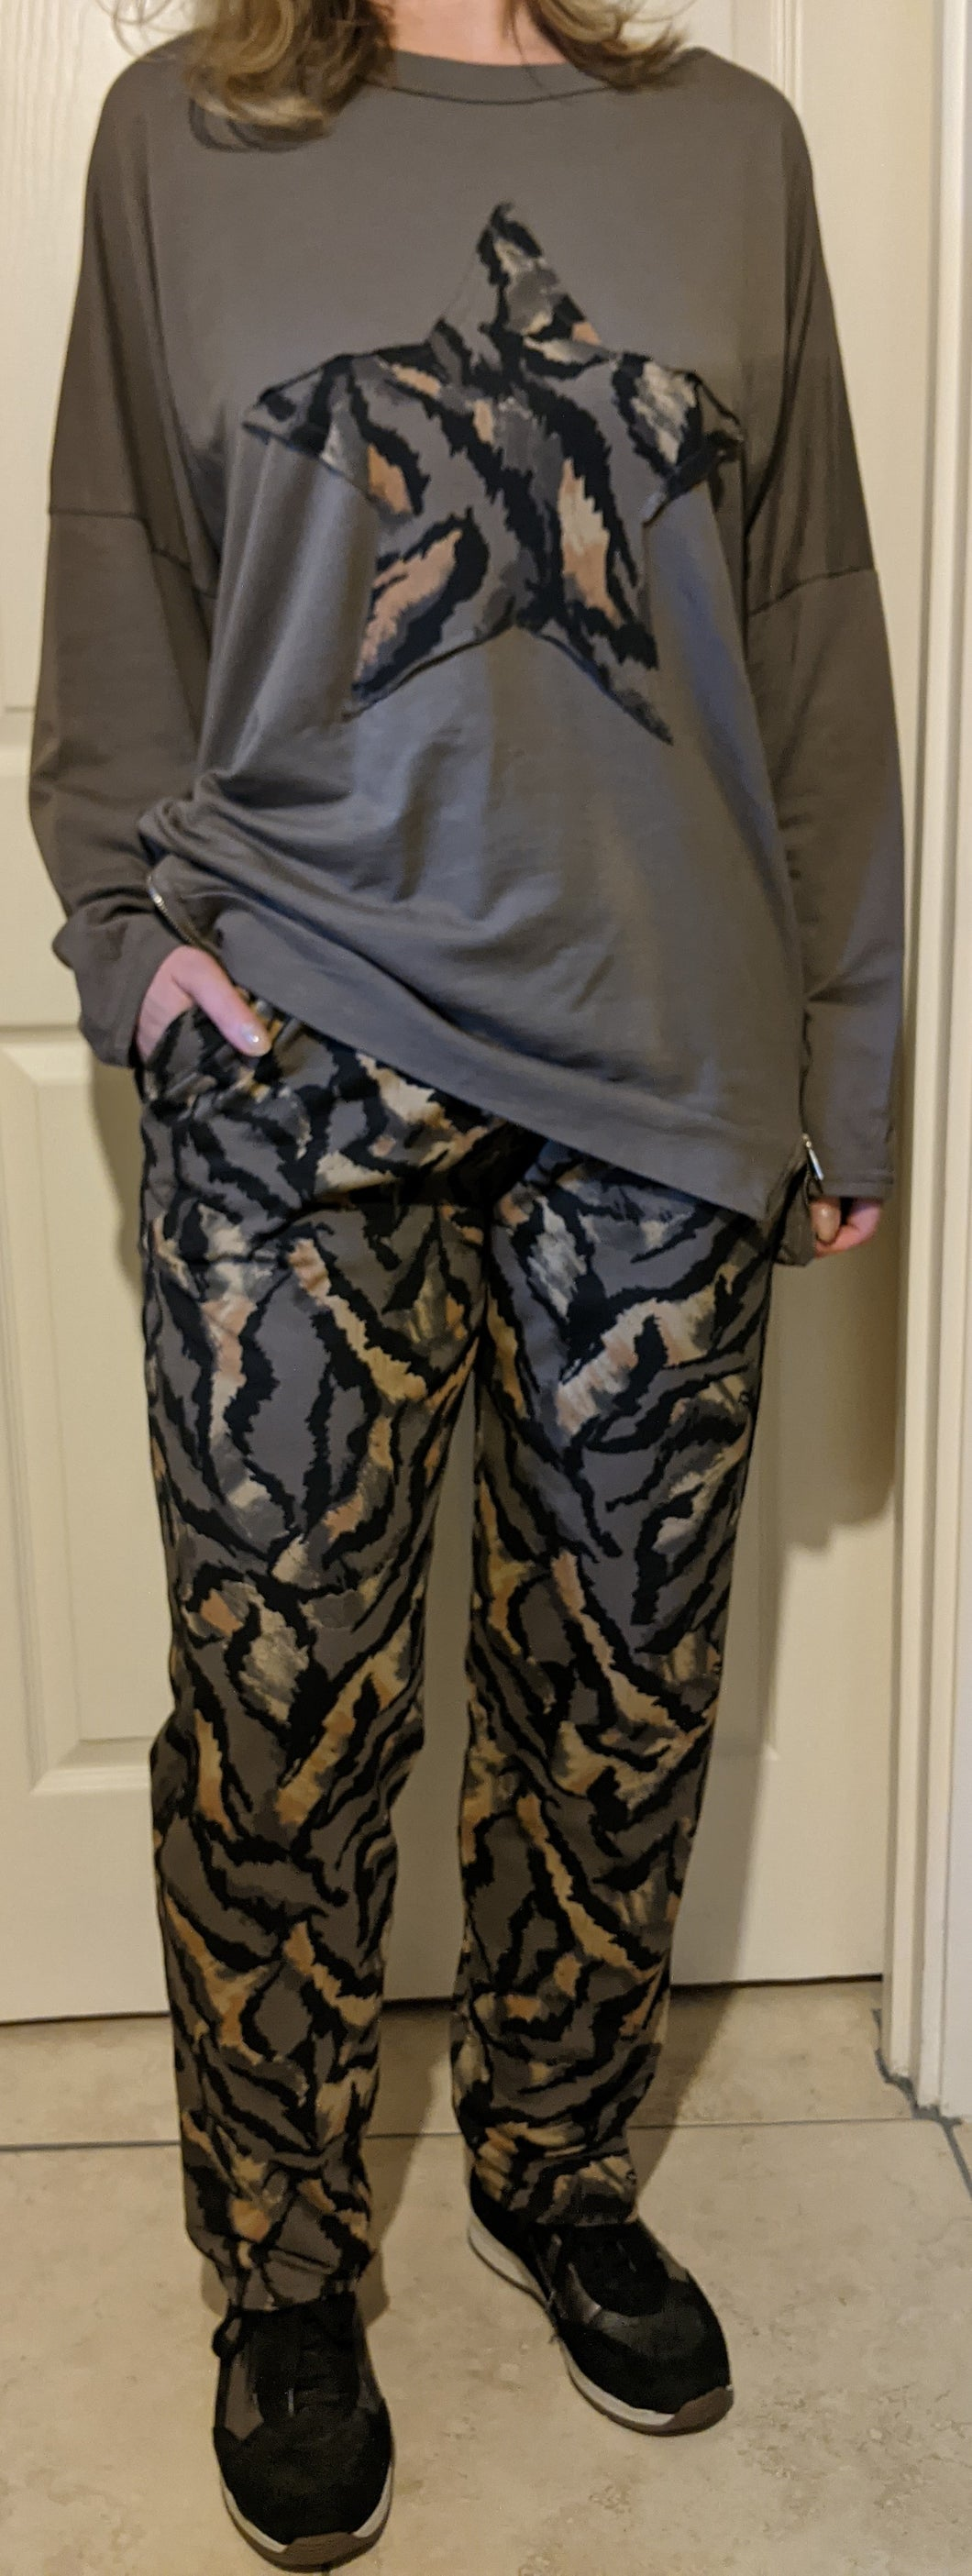 Big Star Loungewear Set with Abstract Tiger Print